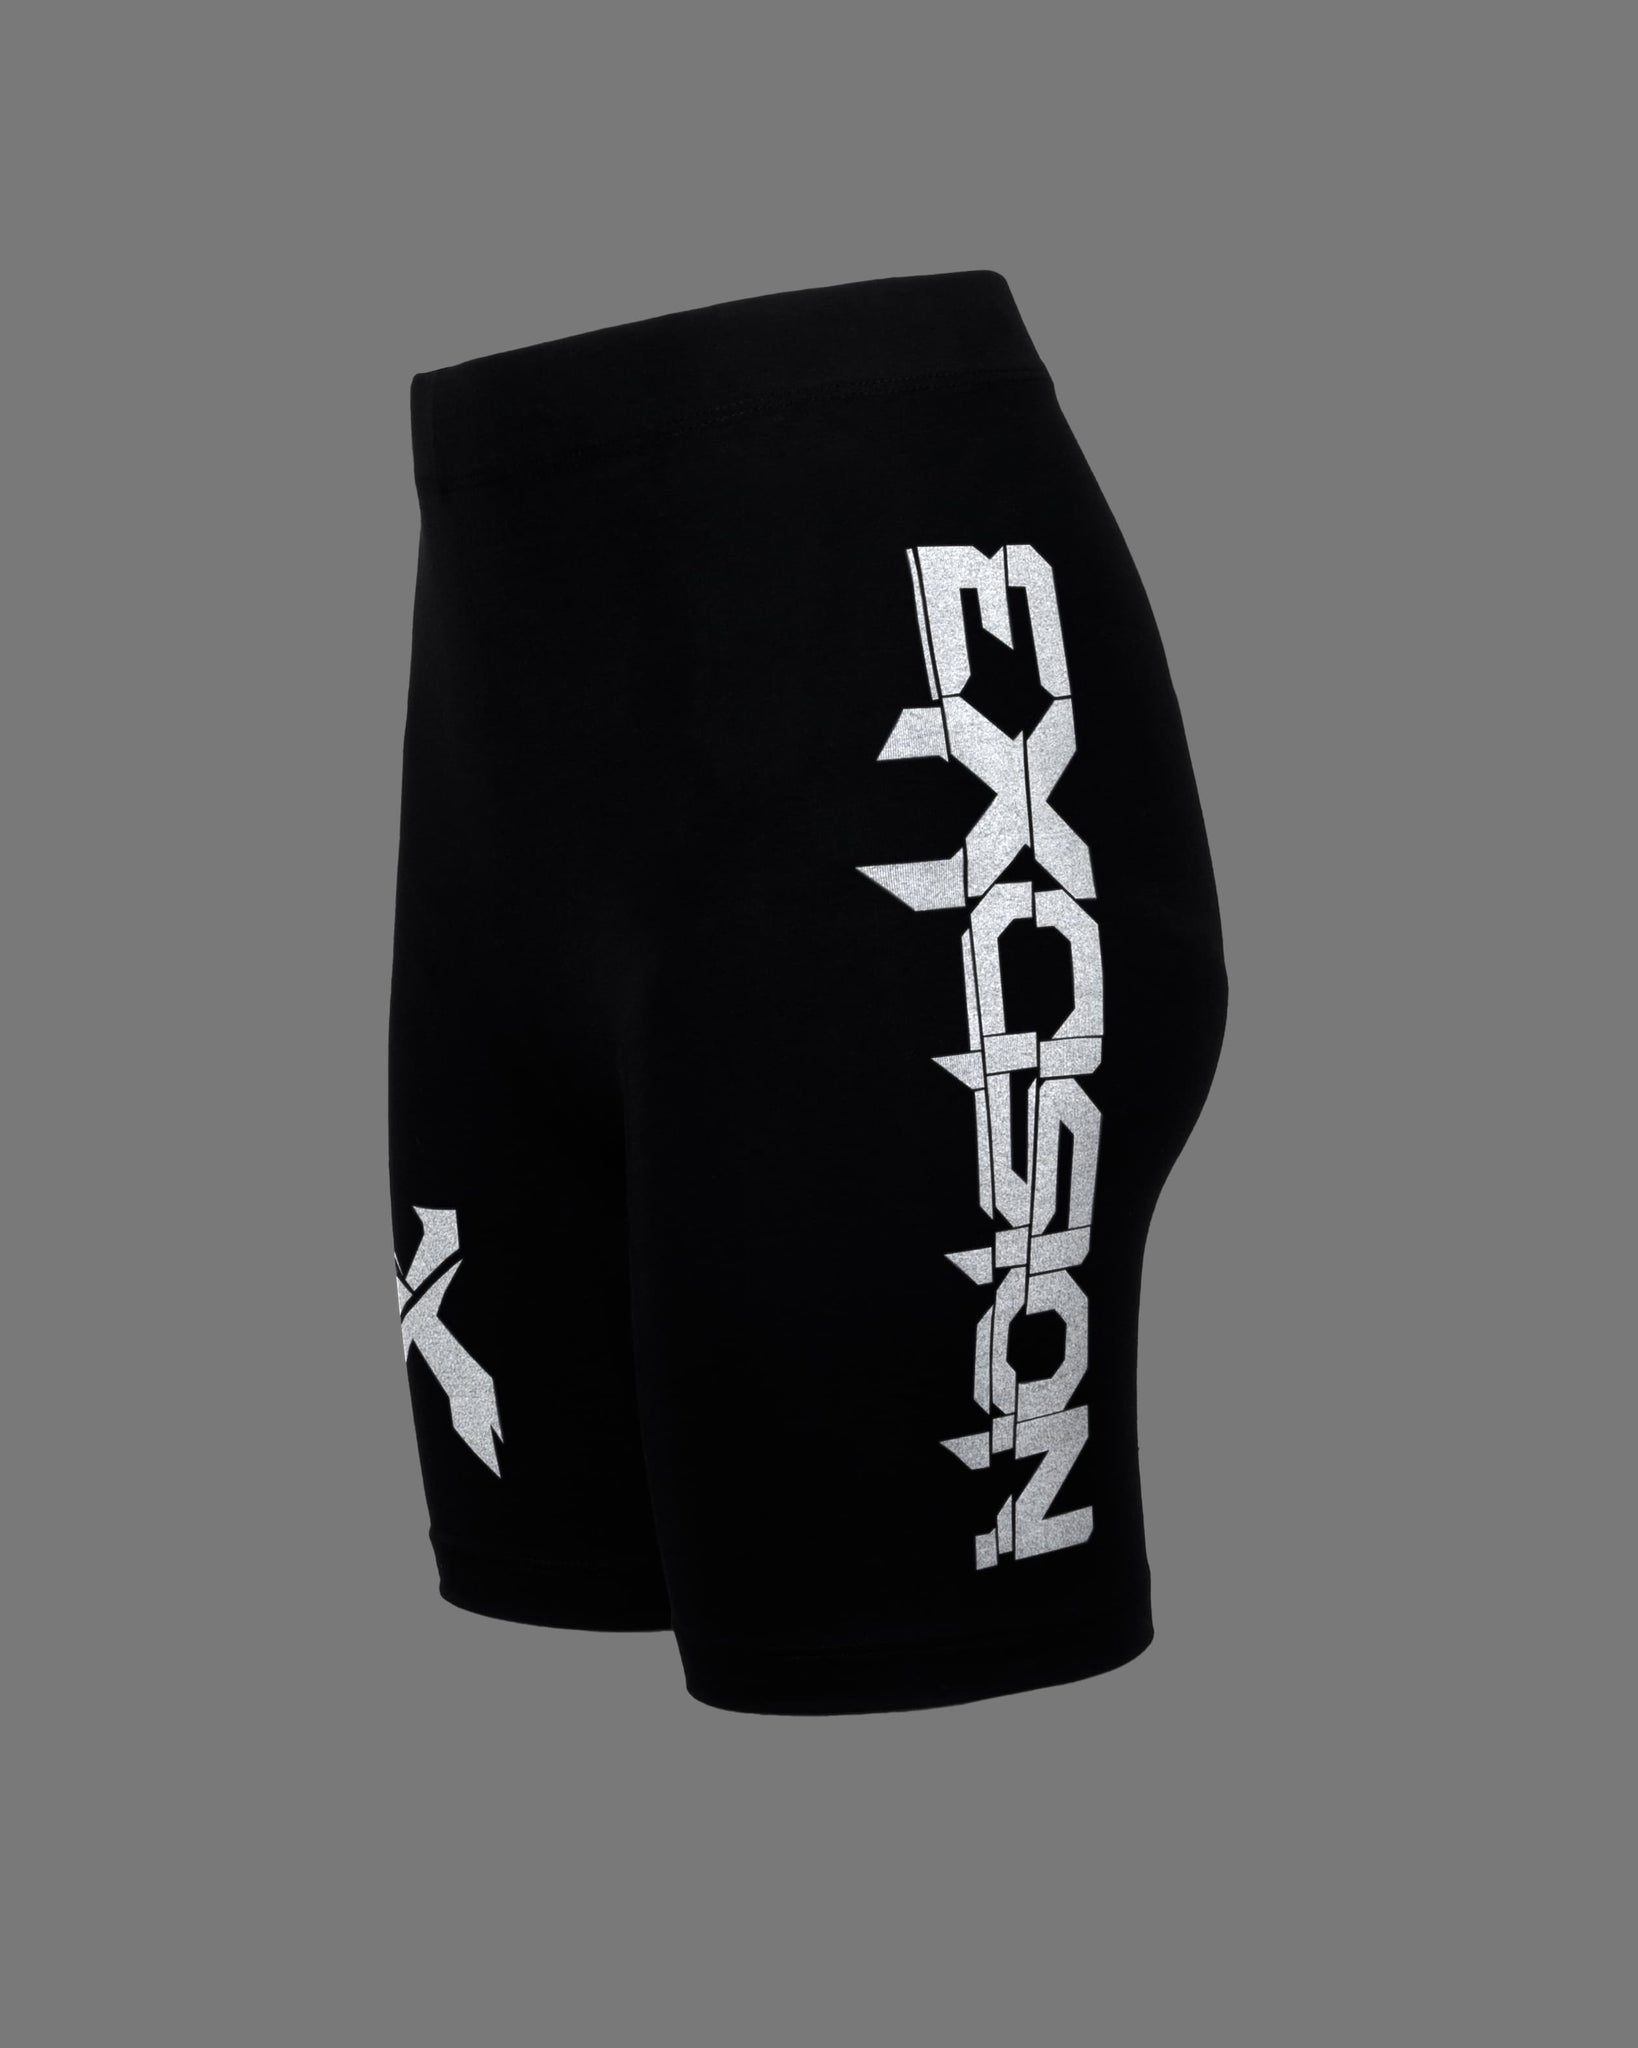 Excision 'Sliced' Logo Women's Reflective Bike Shorts